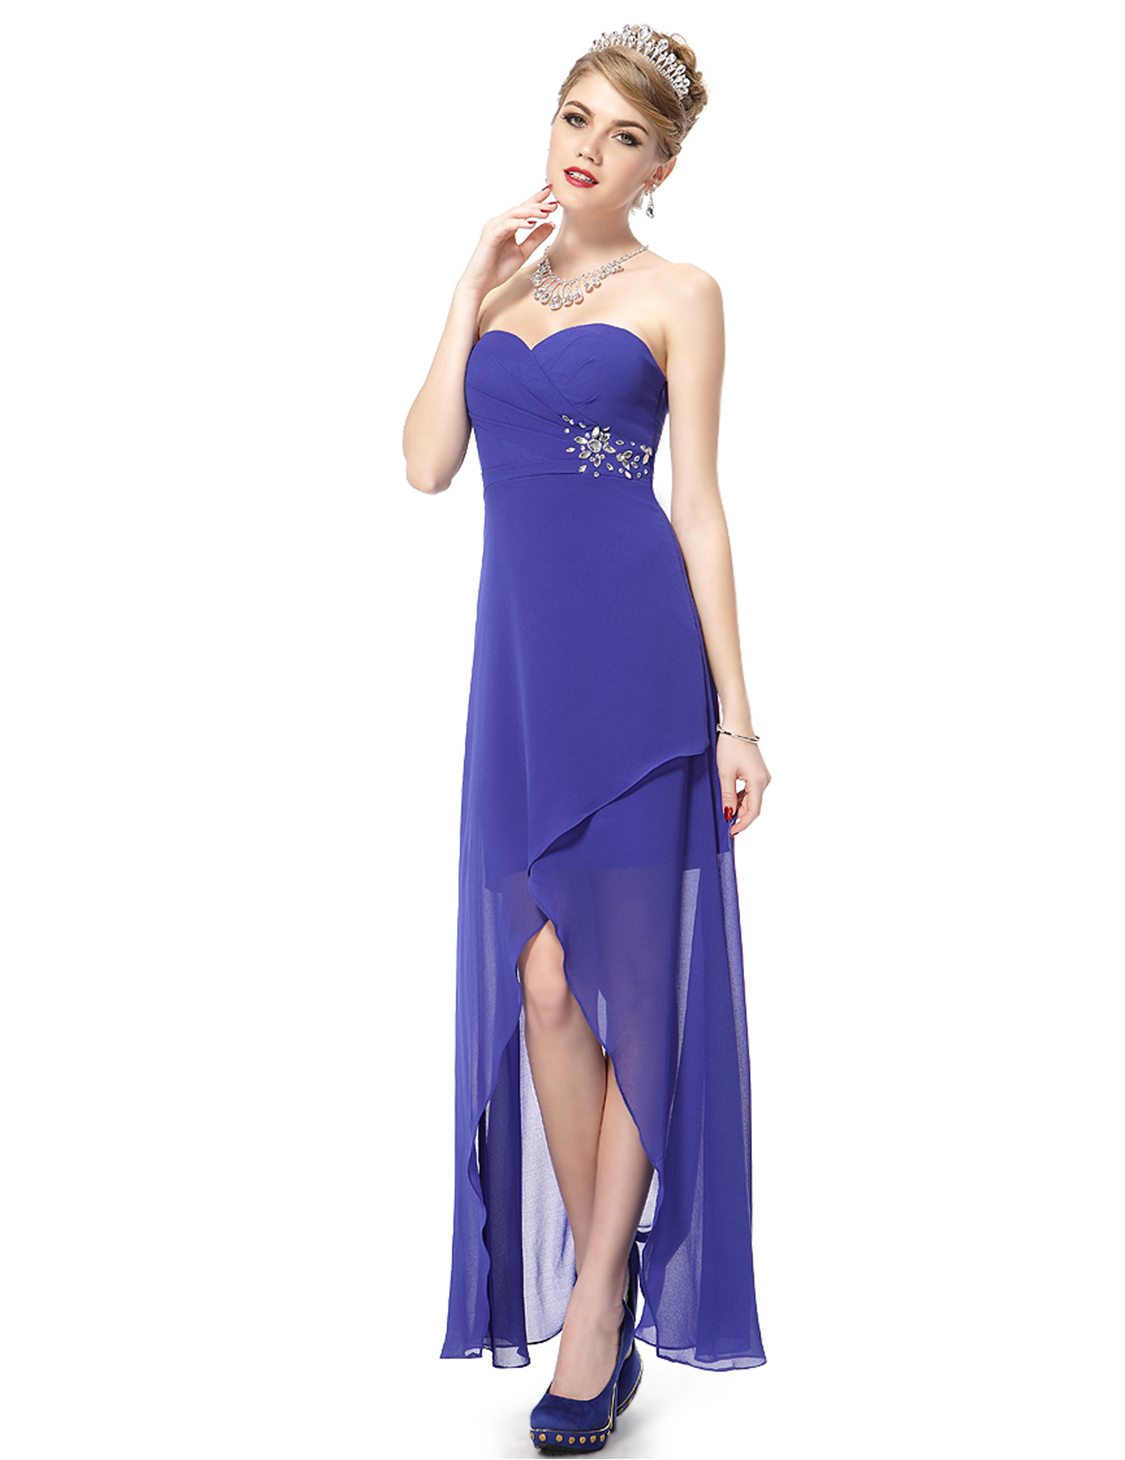 Best Furniture Stores In Ottawa Prom Dresses Stores In Ottawa Eligent Prom Dresses